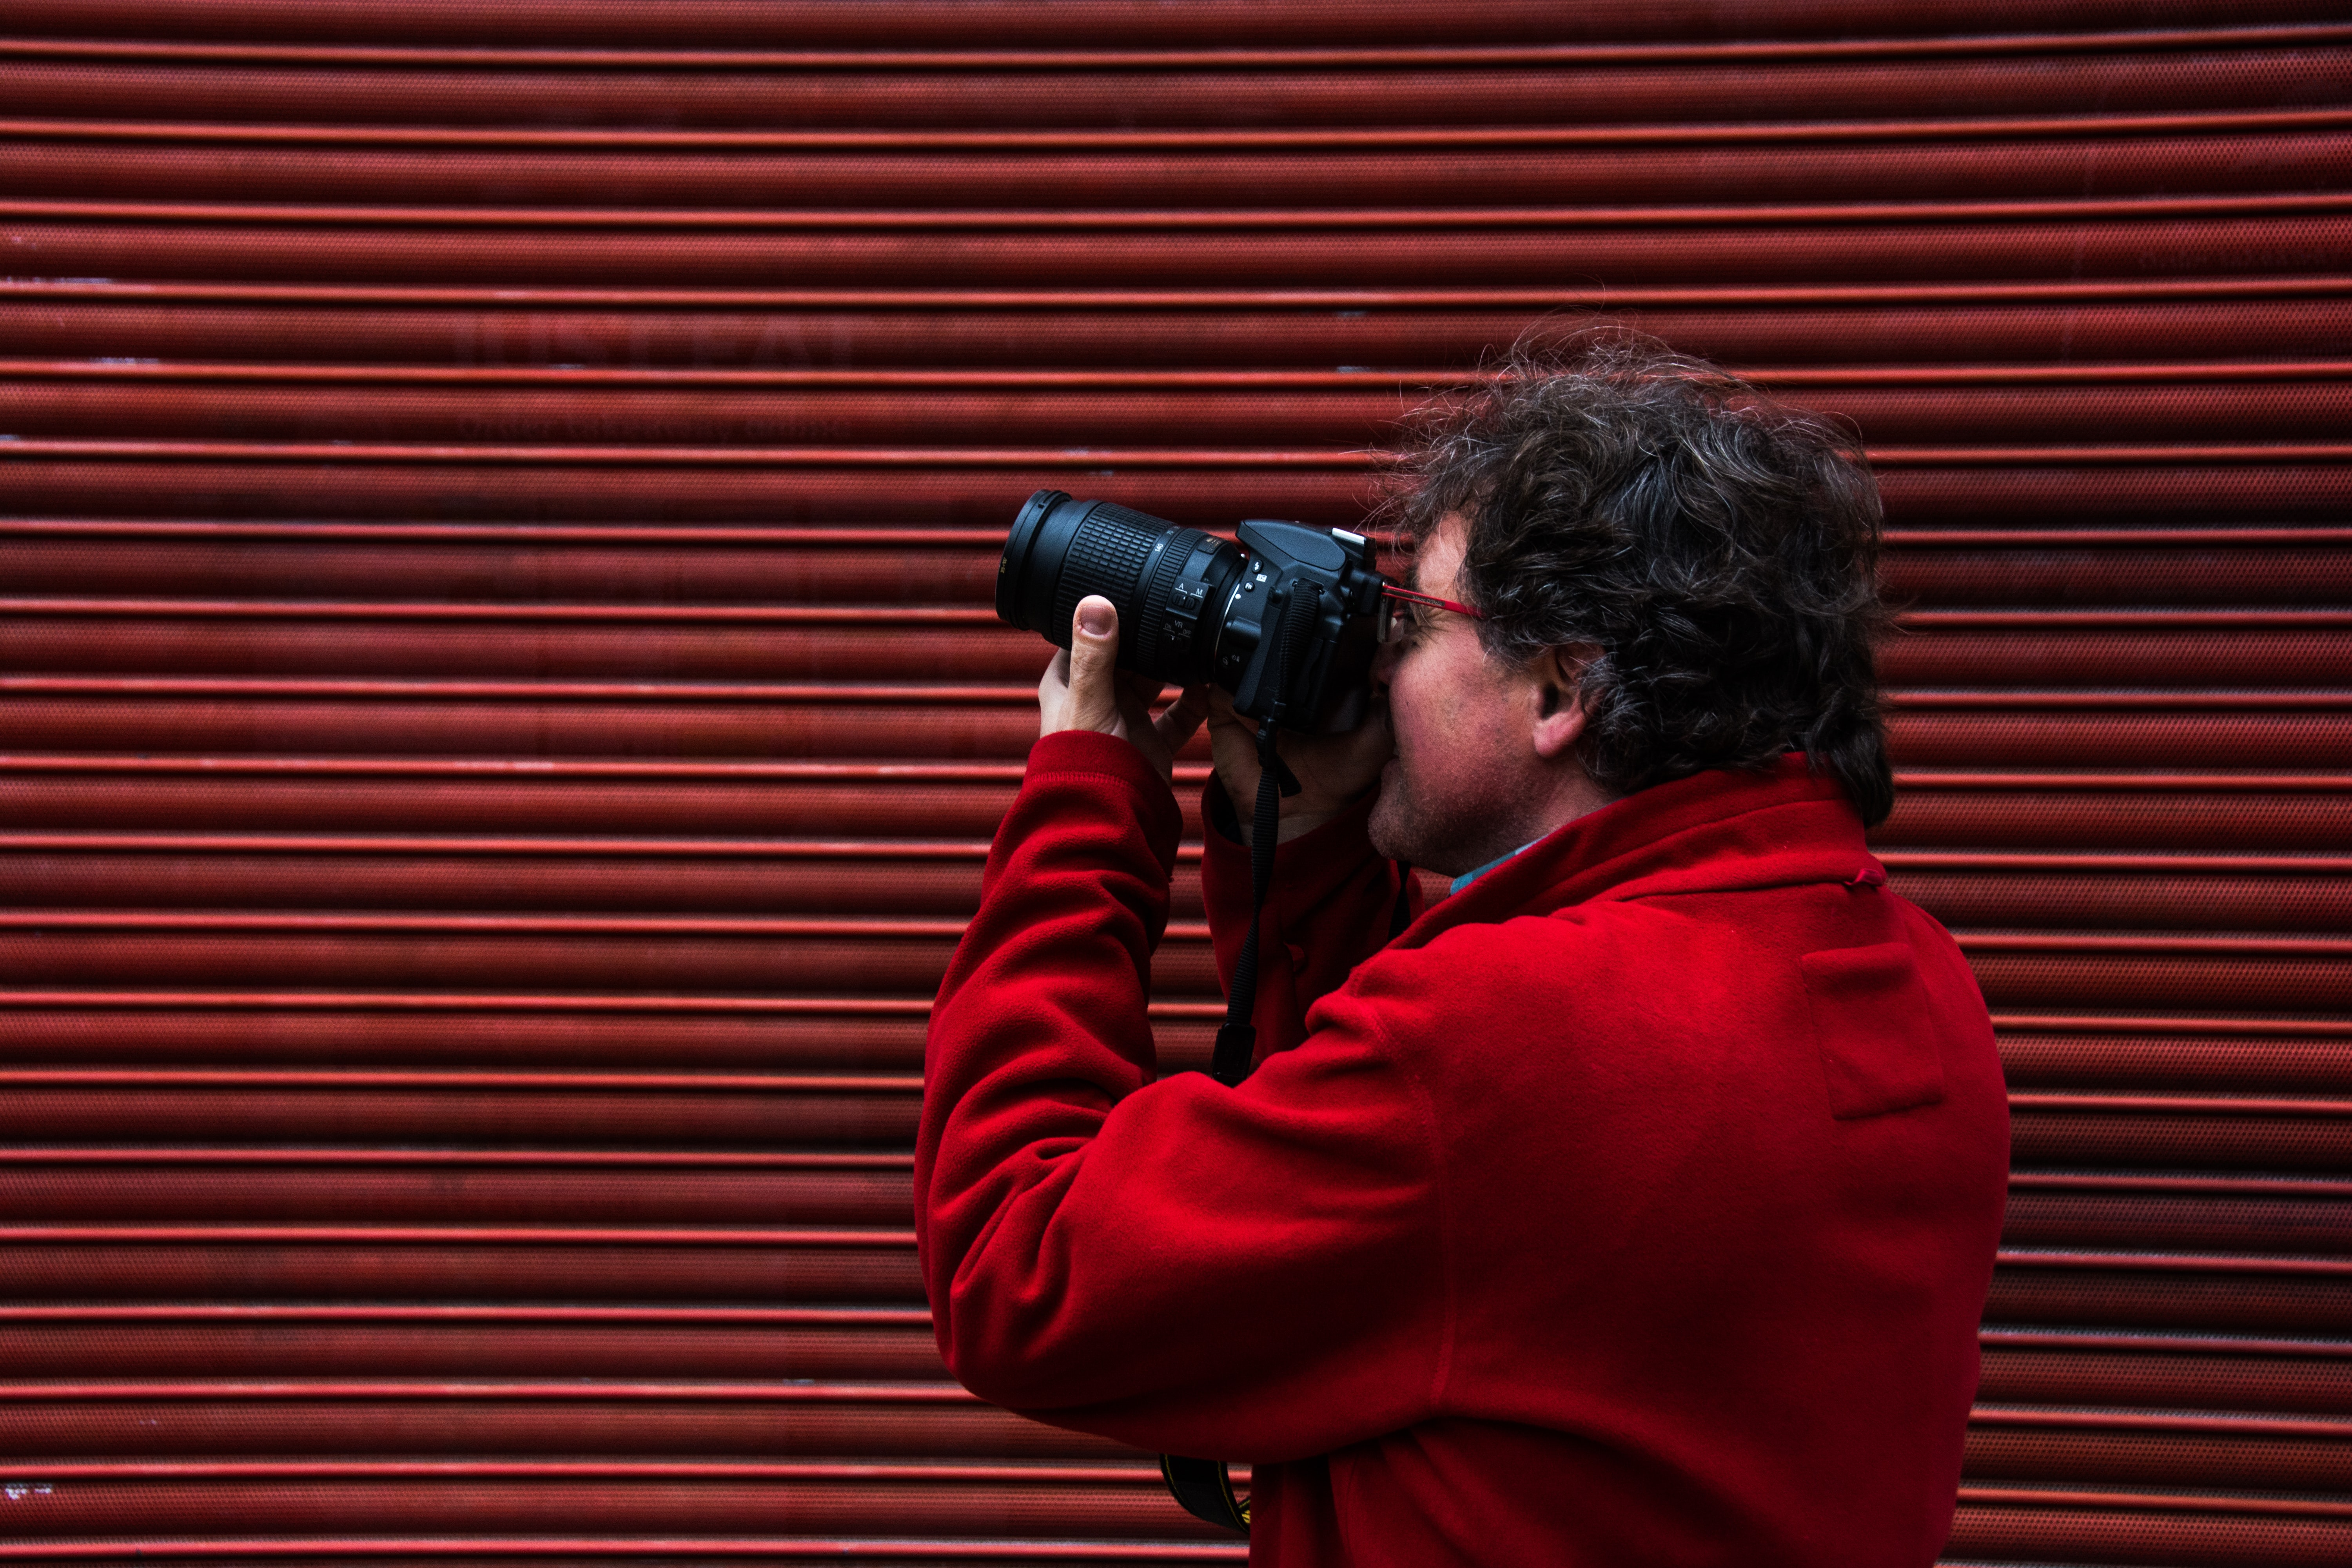 A person in a red jacket points a camera in front of a red wall